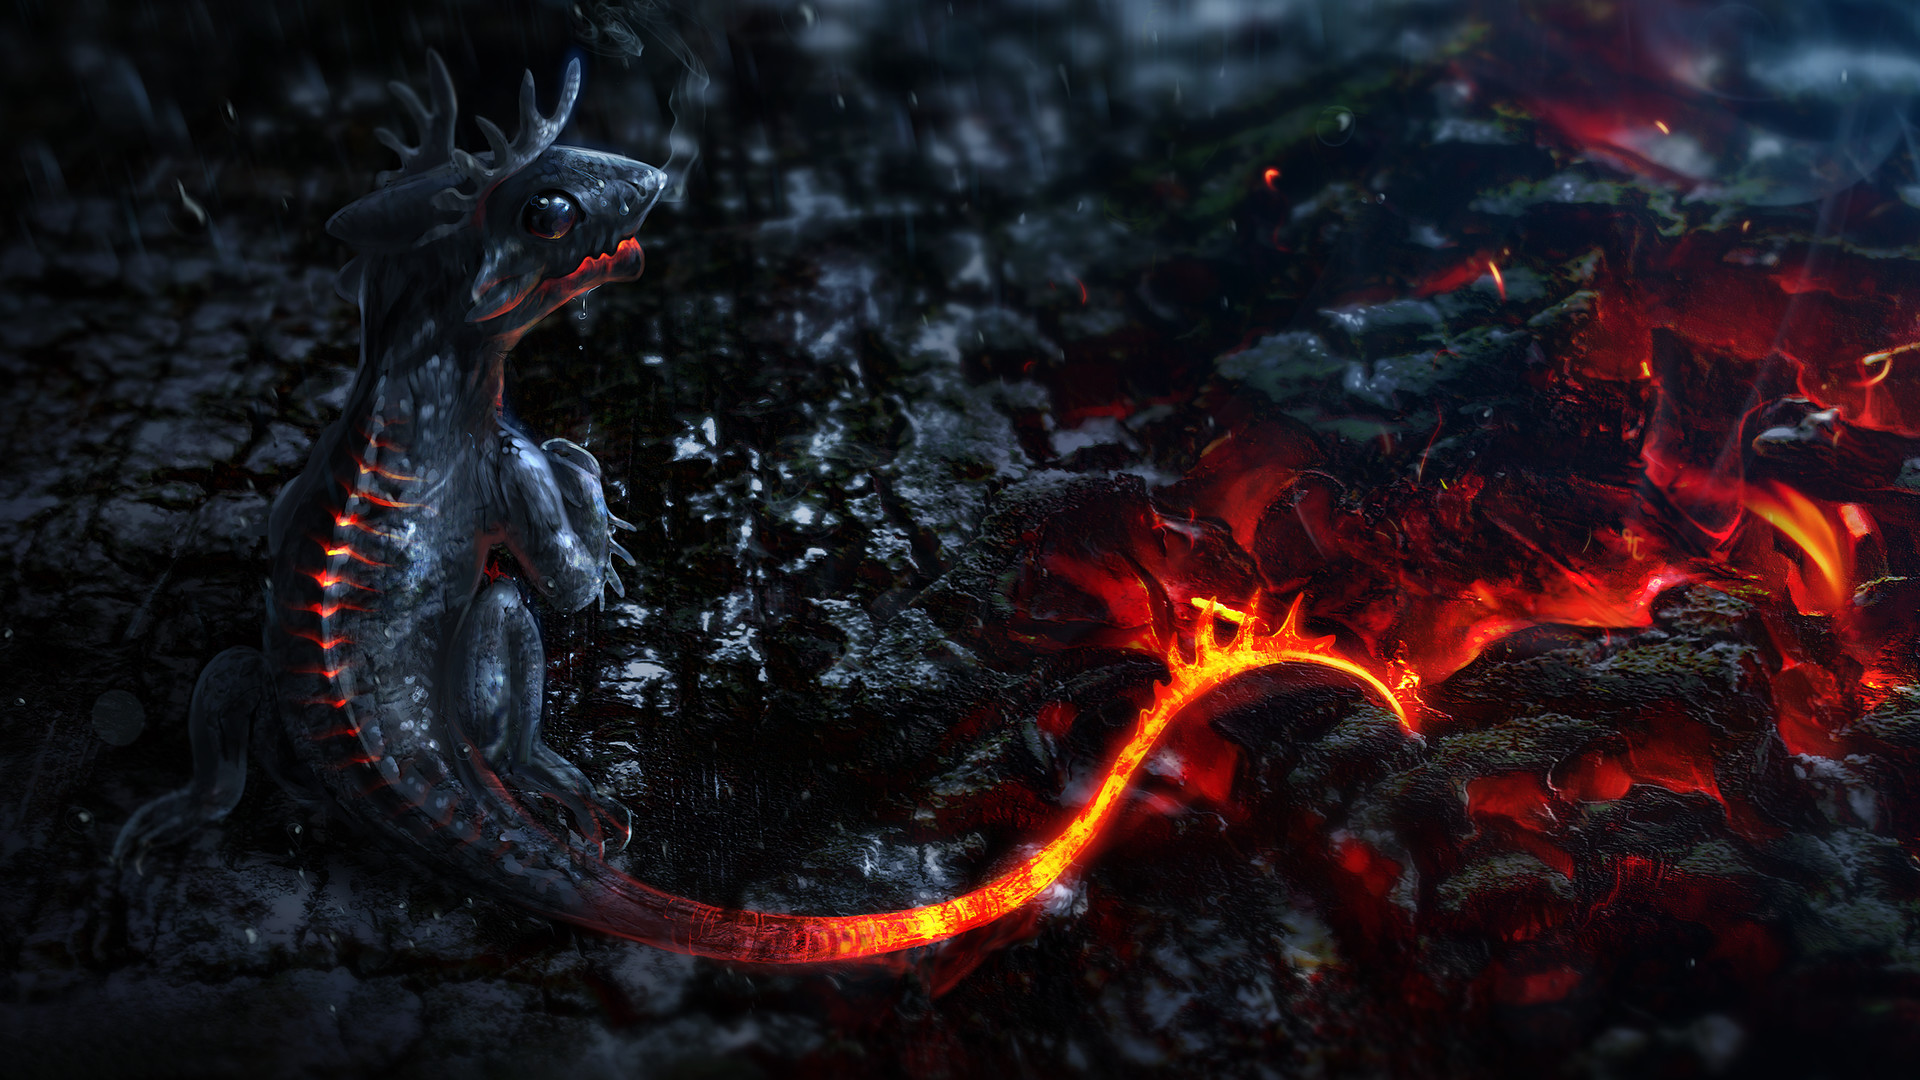 dragon wallpaper 1920x1080 70 images